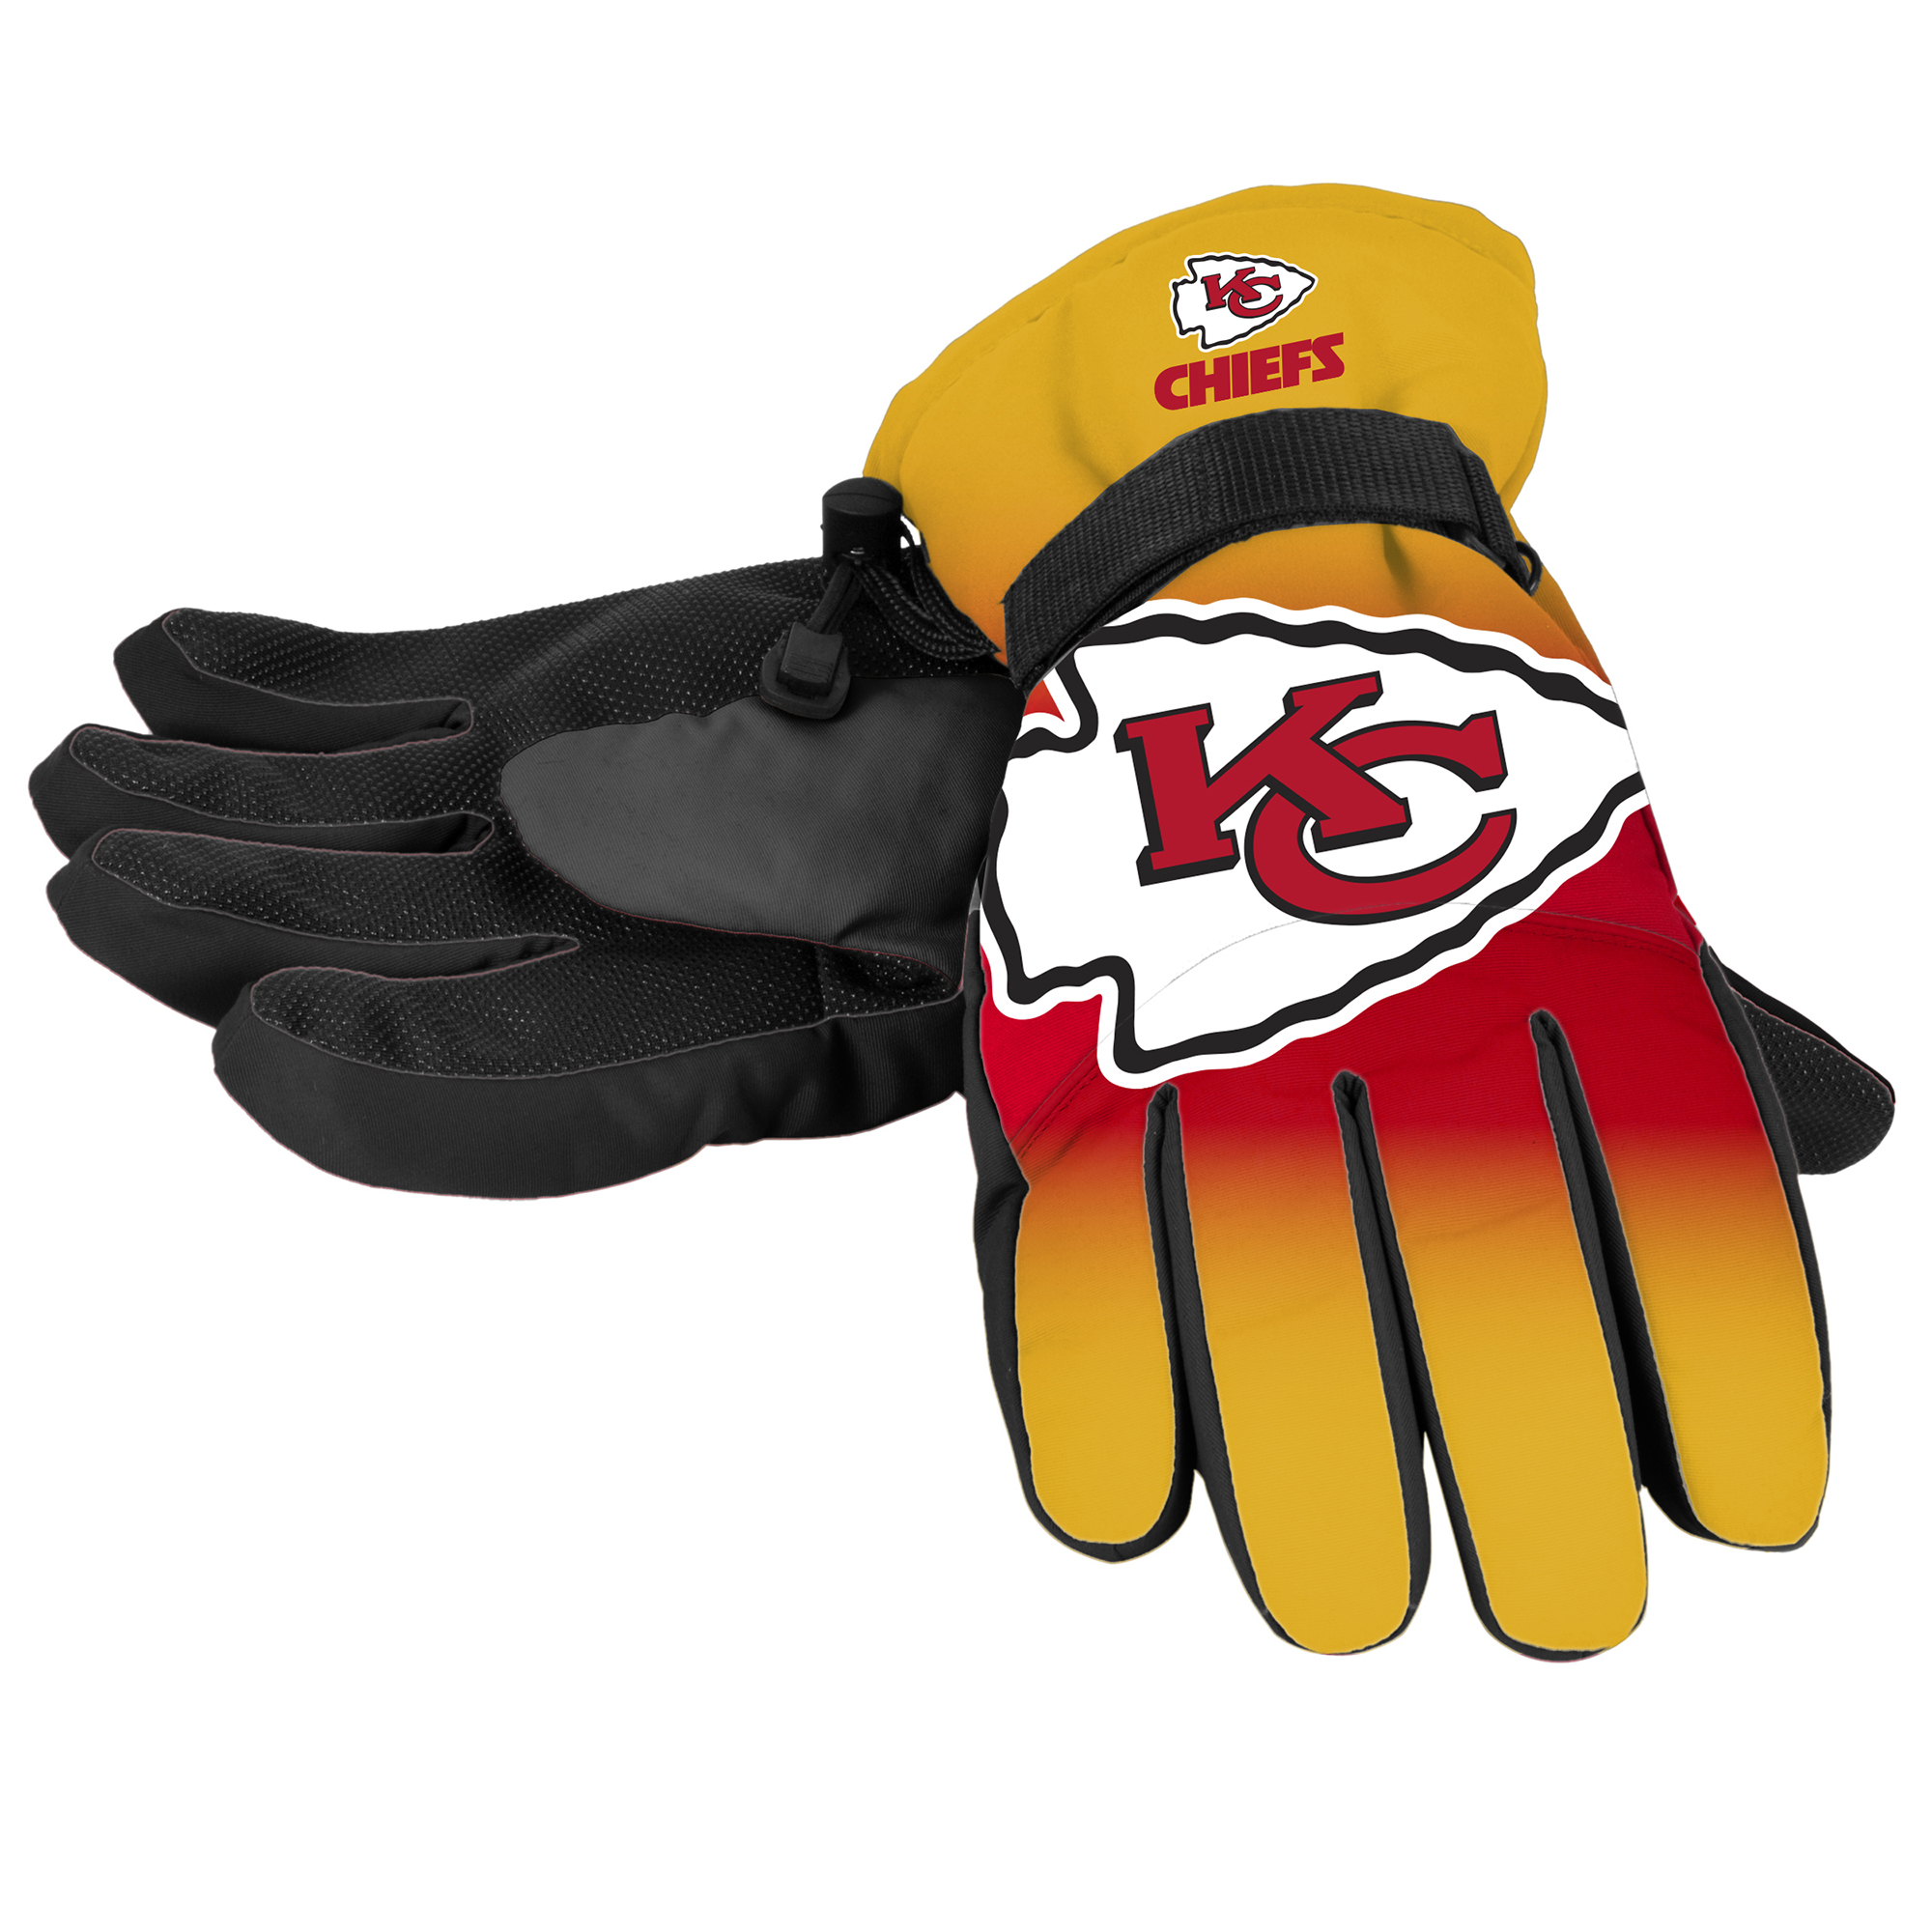 Forever Collectibles - NFL Gradient Big Logo Insulated Gloves-Large/XL, Kansas City Chiefs